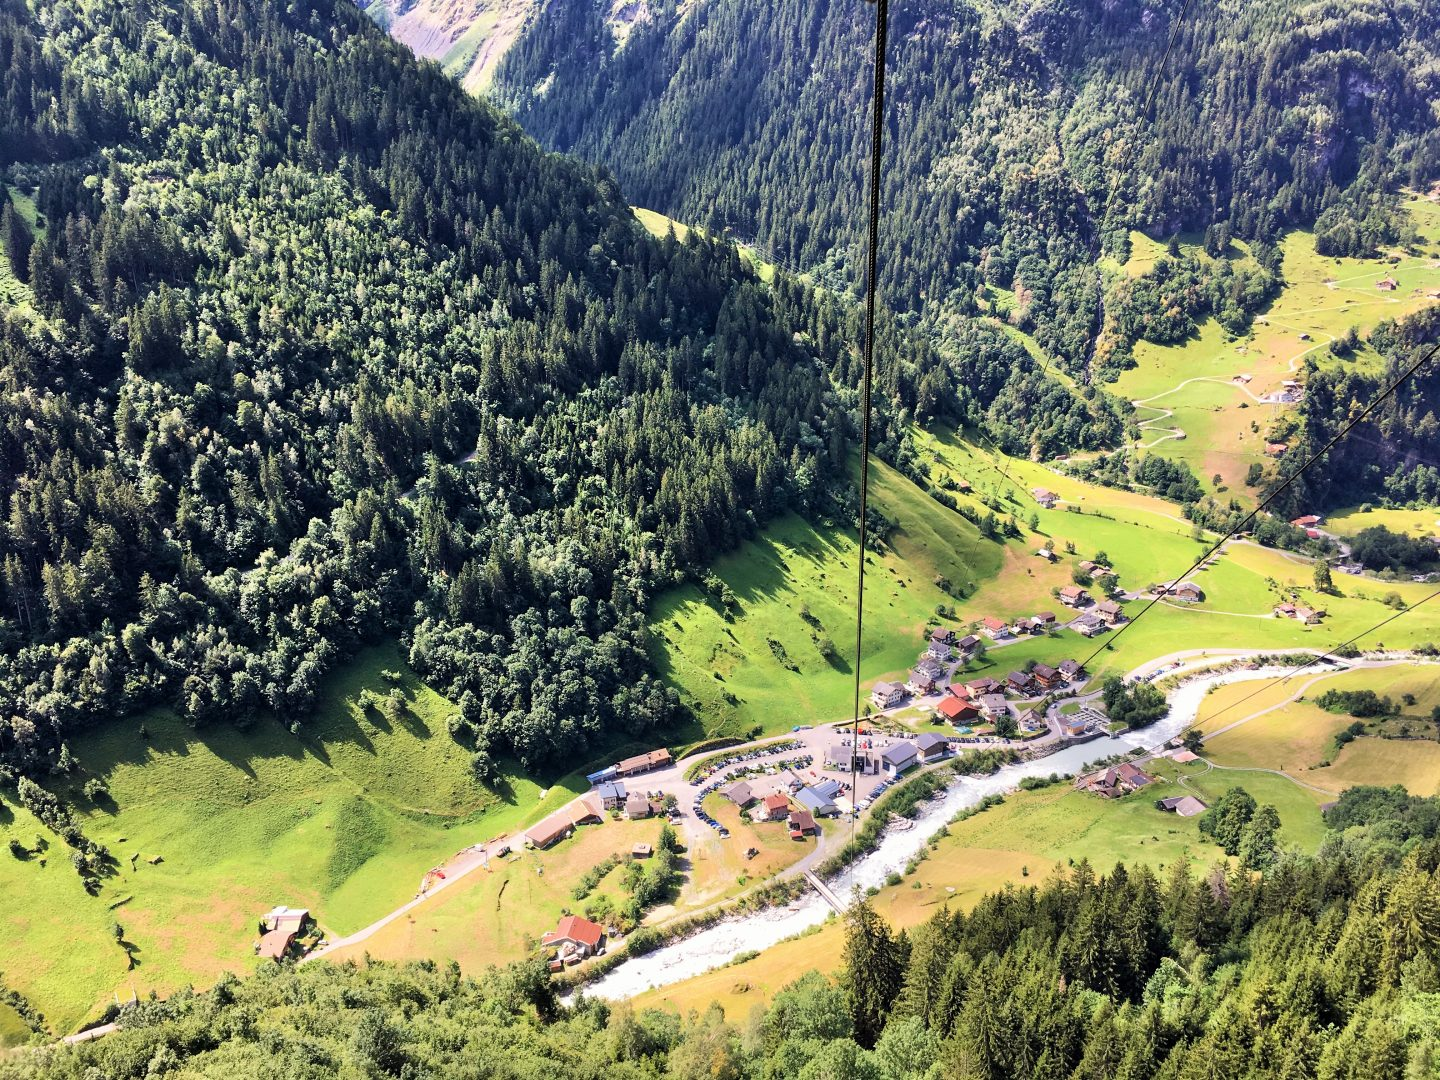 view from Bristen cable car, Swiss Alps, hiking with kids in Switzerland